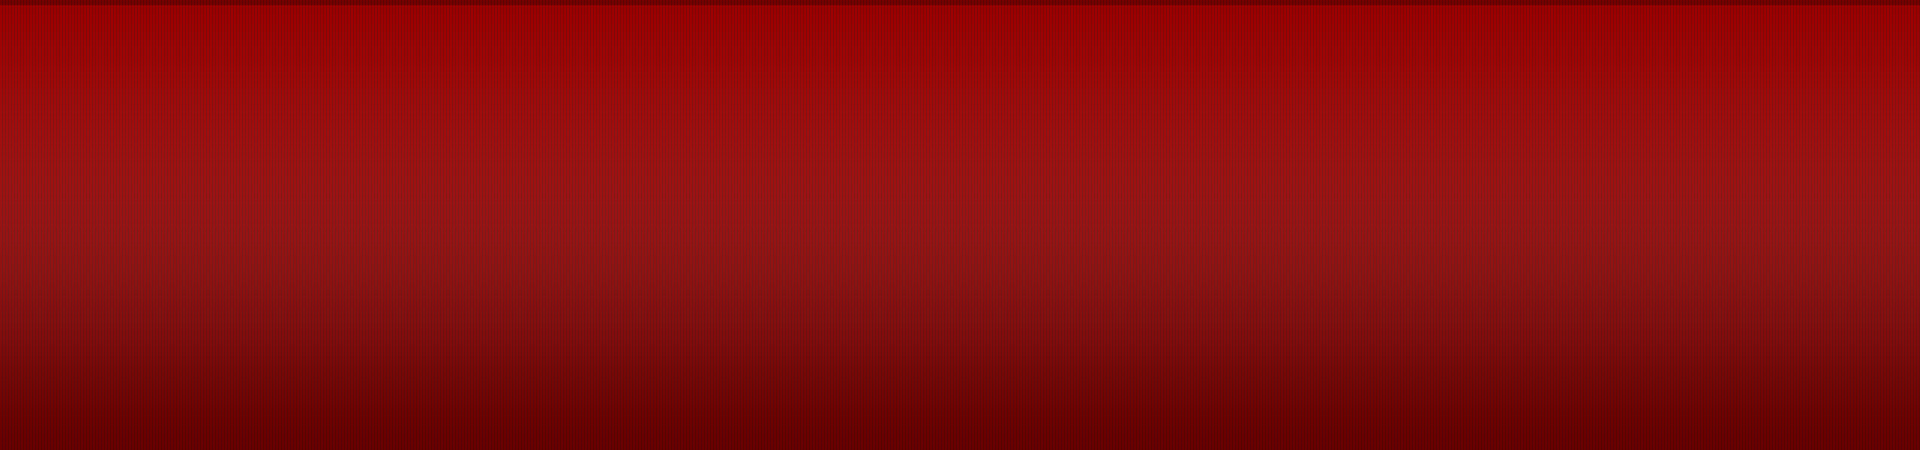 Red Youtube Banner Template Best Of Youtube Banner Red and White to Pin On Pinterest